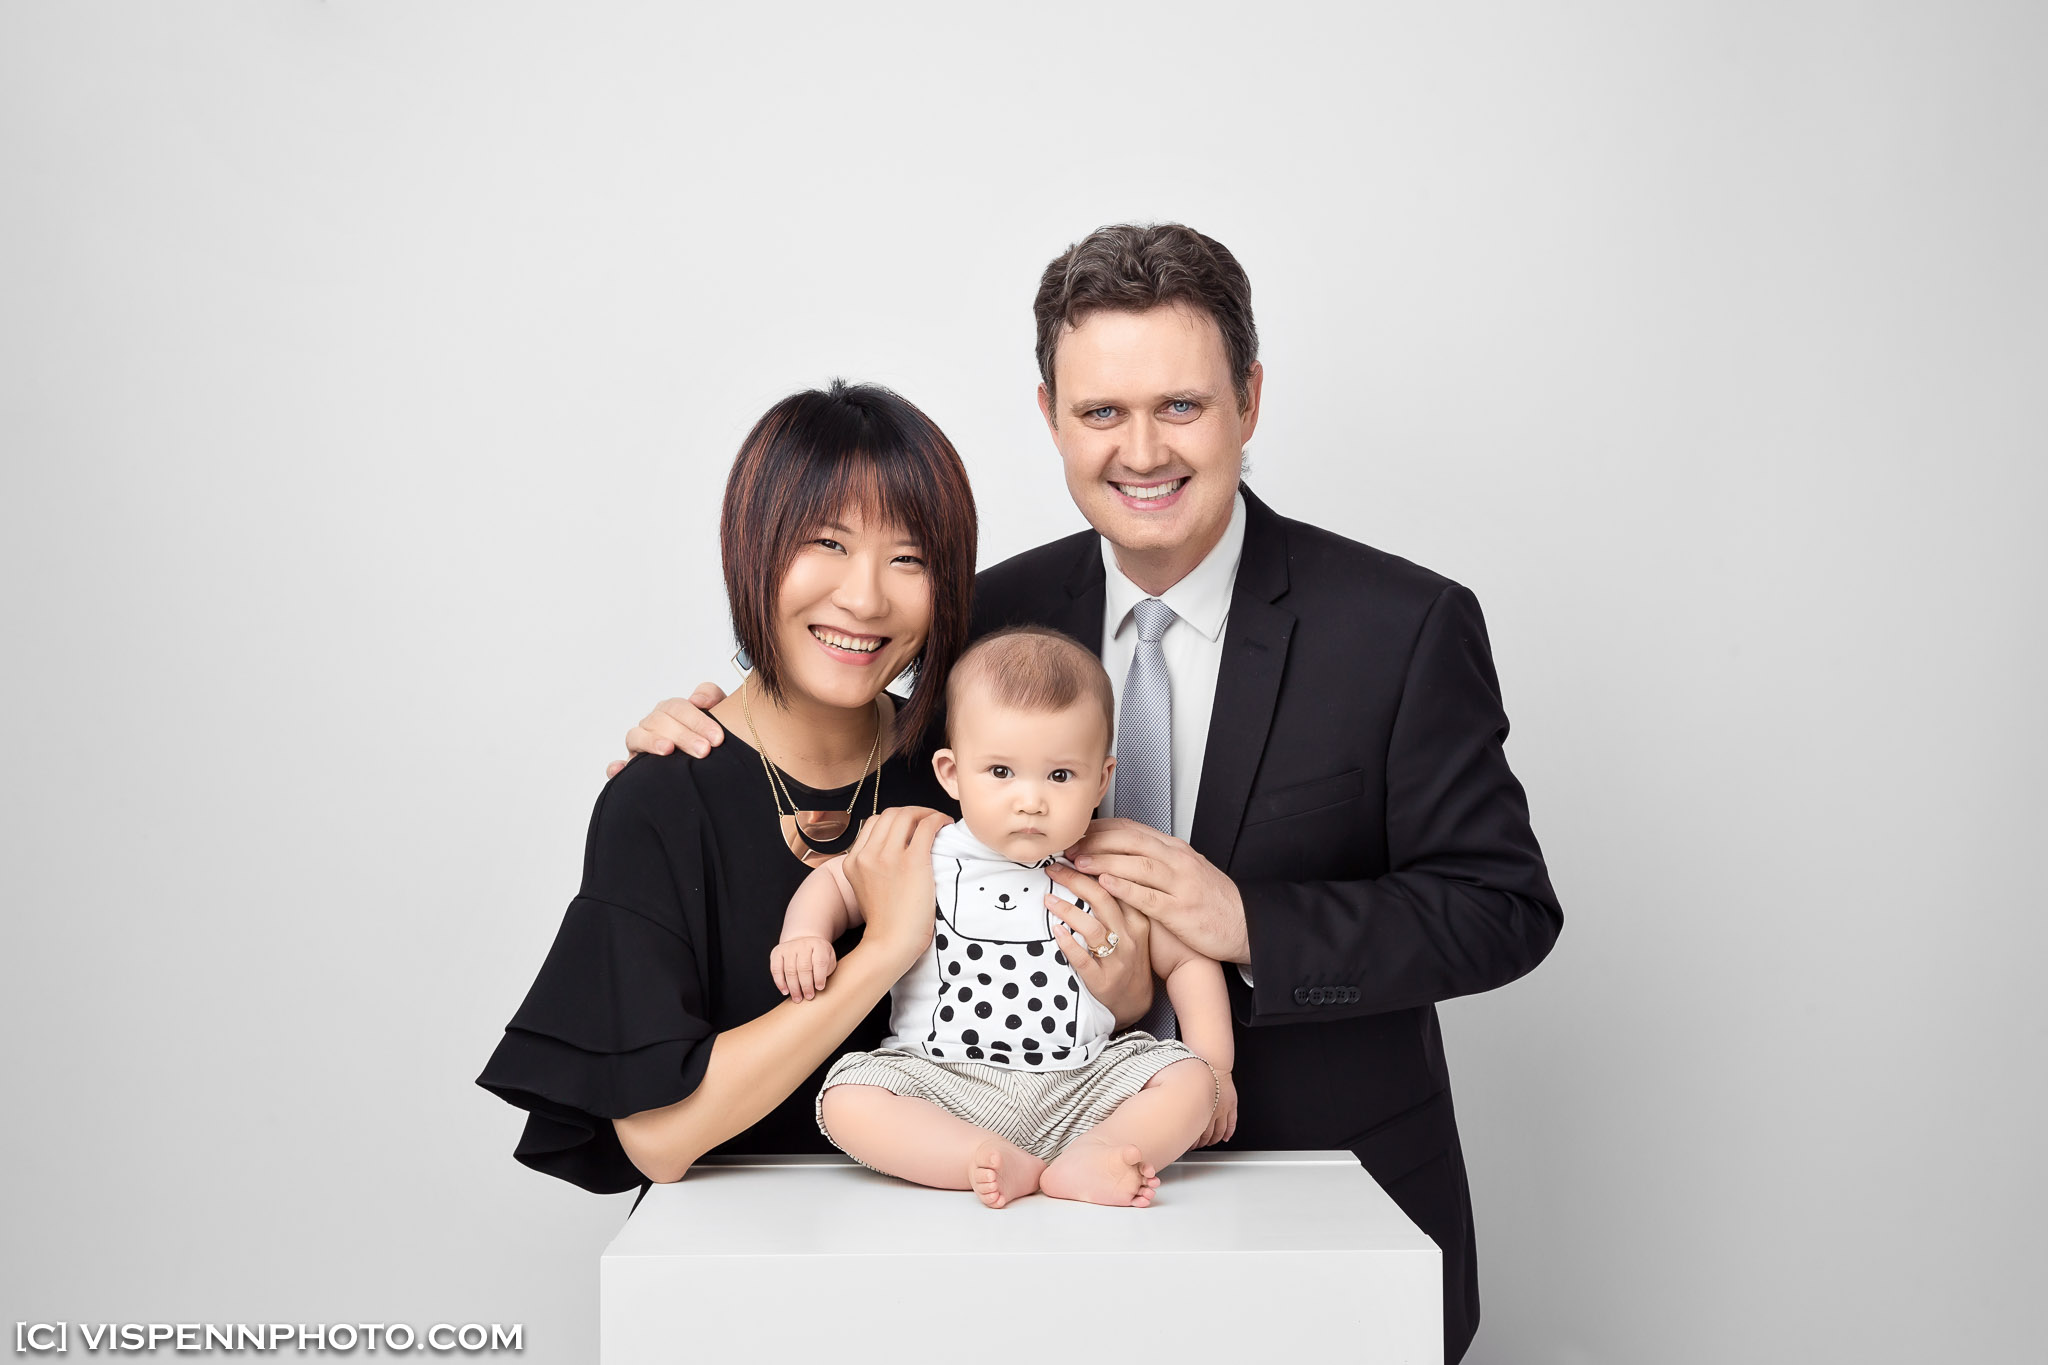 Melbourne Newborn Baby Family Photo BaoBao VISPENN 墨尔本 儿童 宝宝 百天照 满月照 孕妇照 全家福 KIDS VISPENN RobinScottTiger 2135